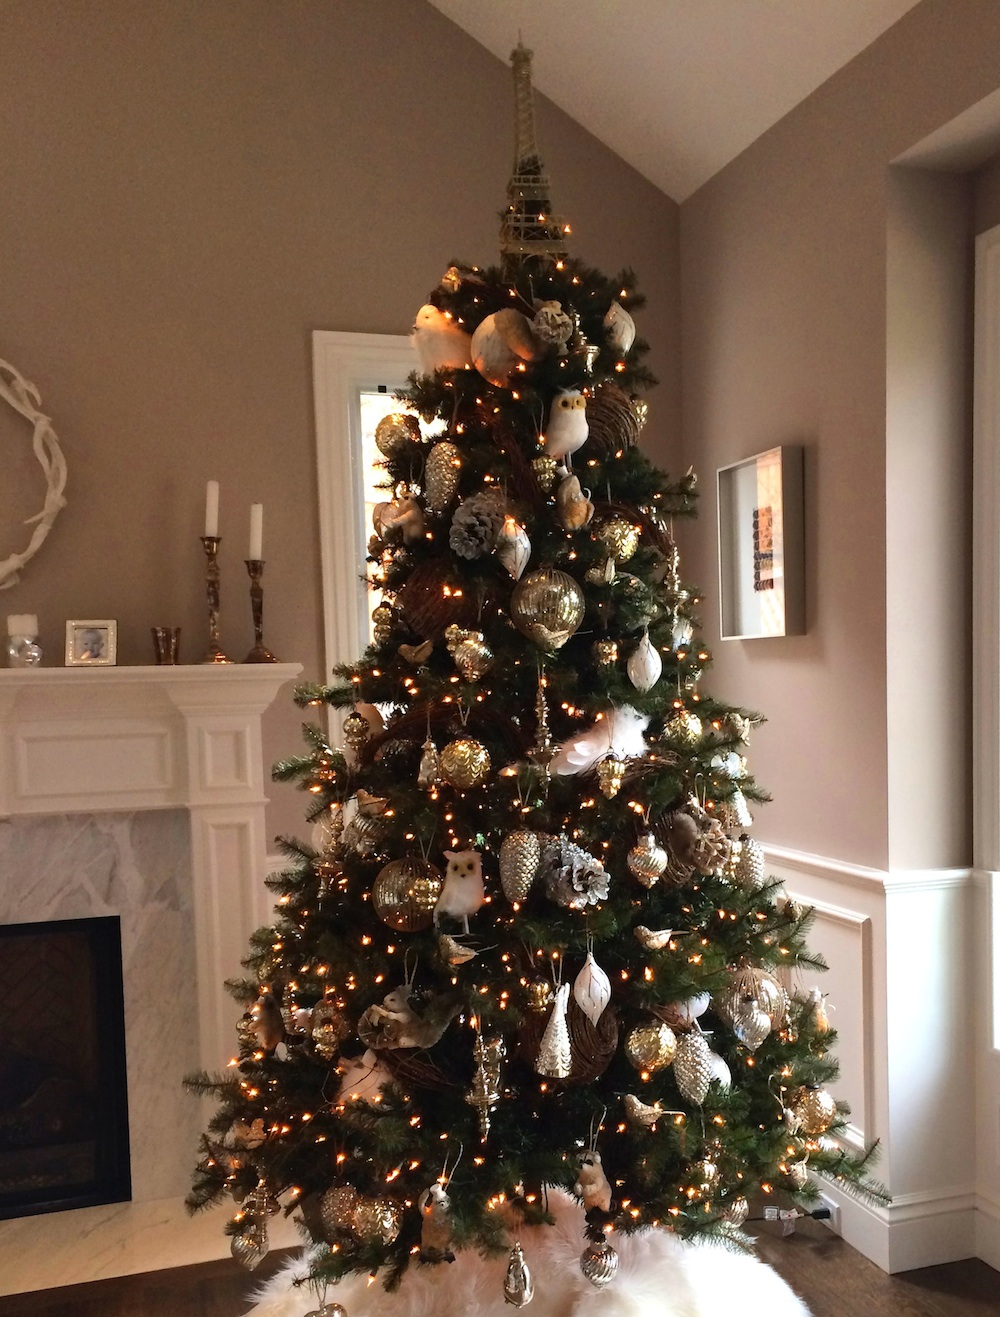 pottery barn christmas tree whether it s in the magazine or in the store they re always festive fun and styled to perfection